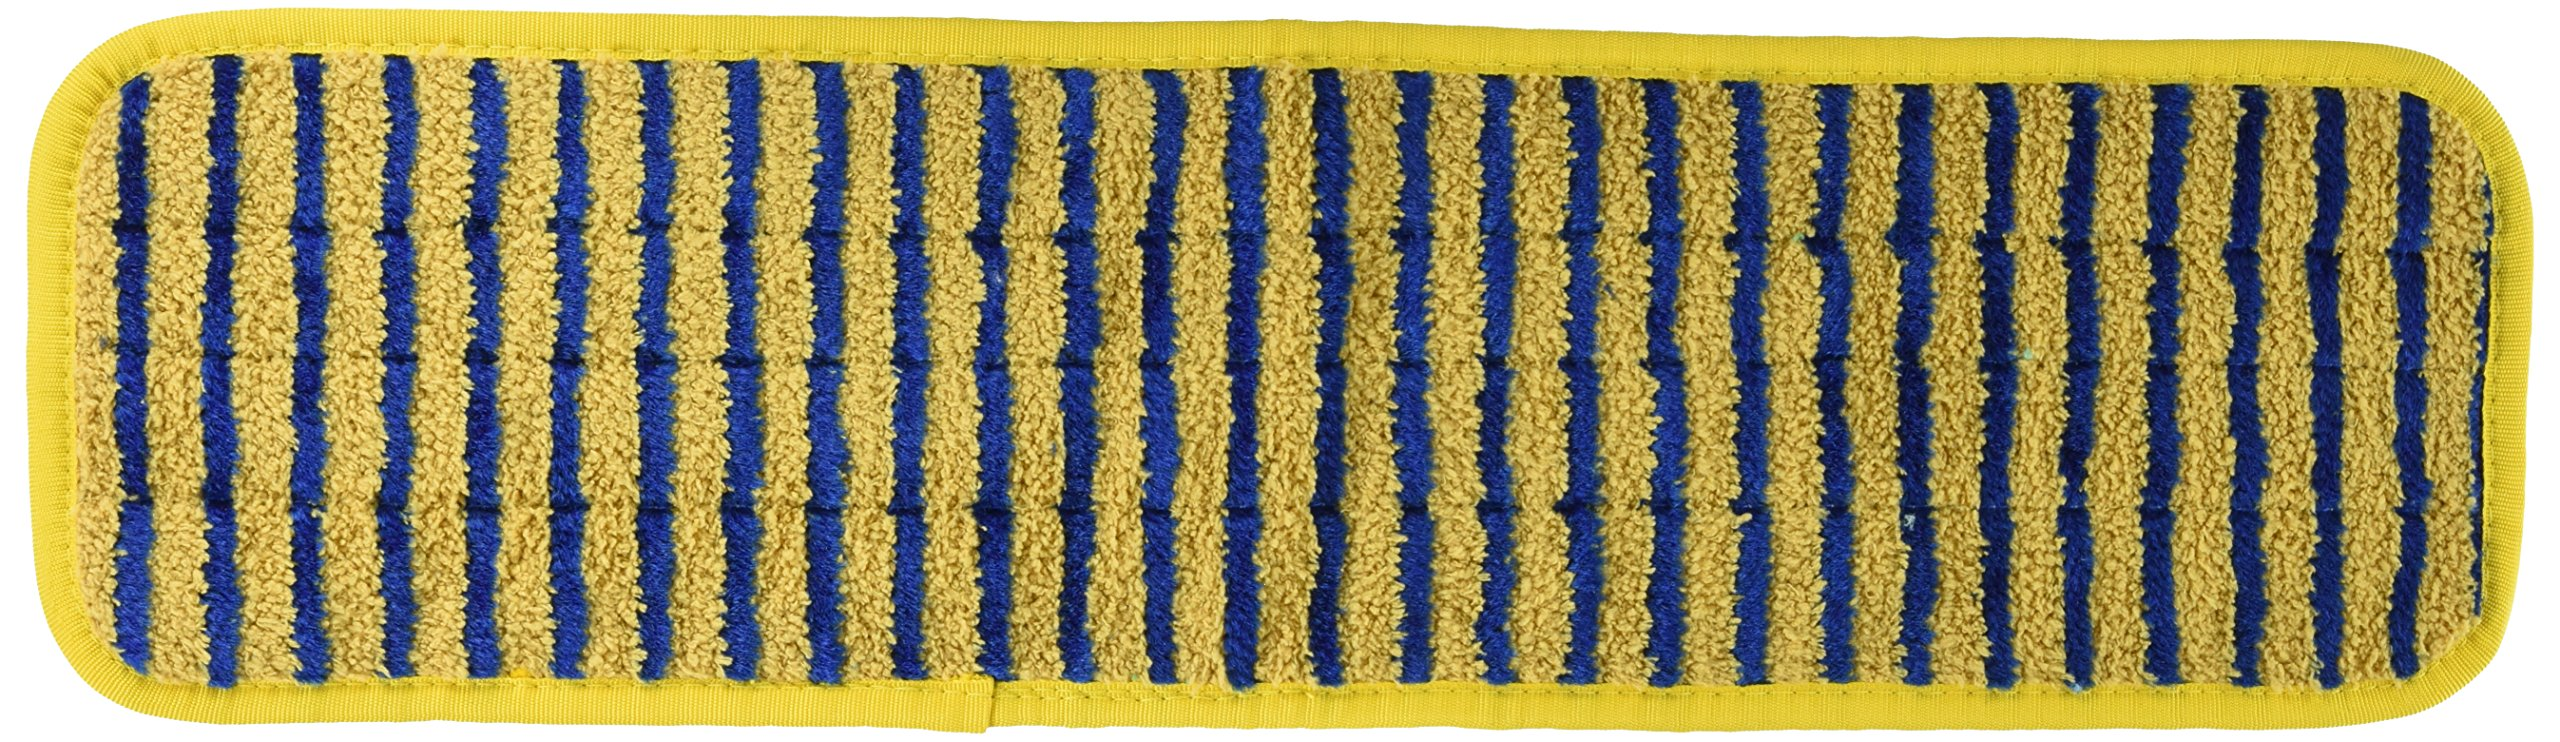 Rubbermaid Commercial Products RCP Q810 Microfiber Scrub Pad 18 X 5 Yellow/Blue - Case of 6 by Rubbermaid Commercial